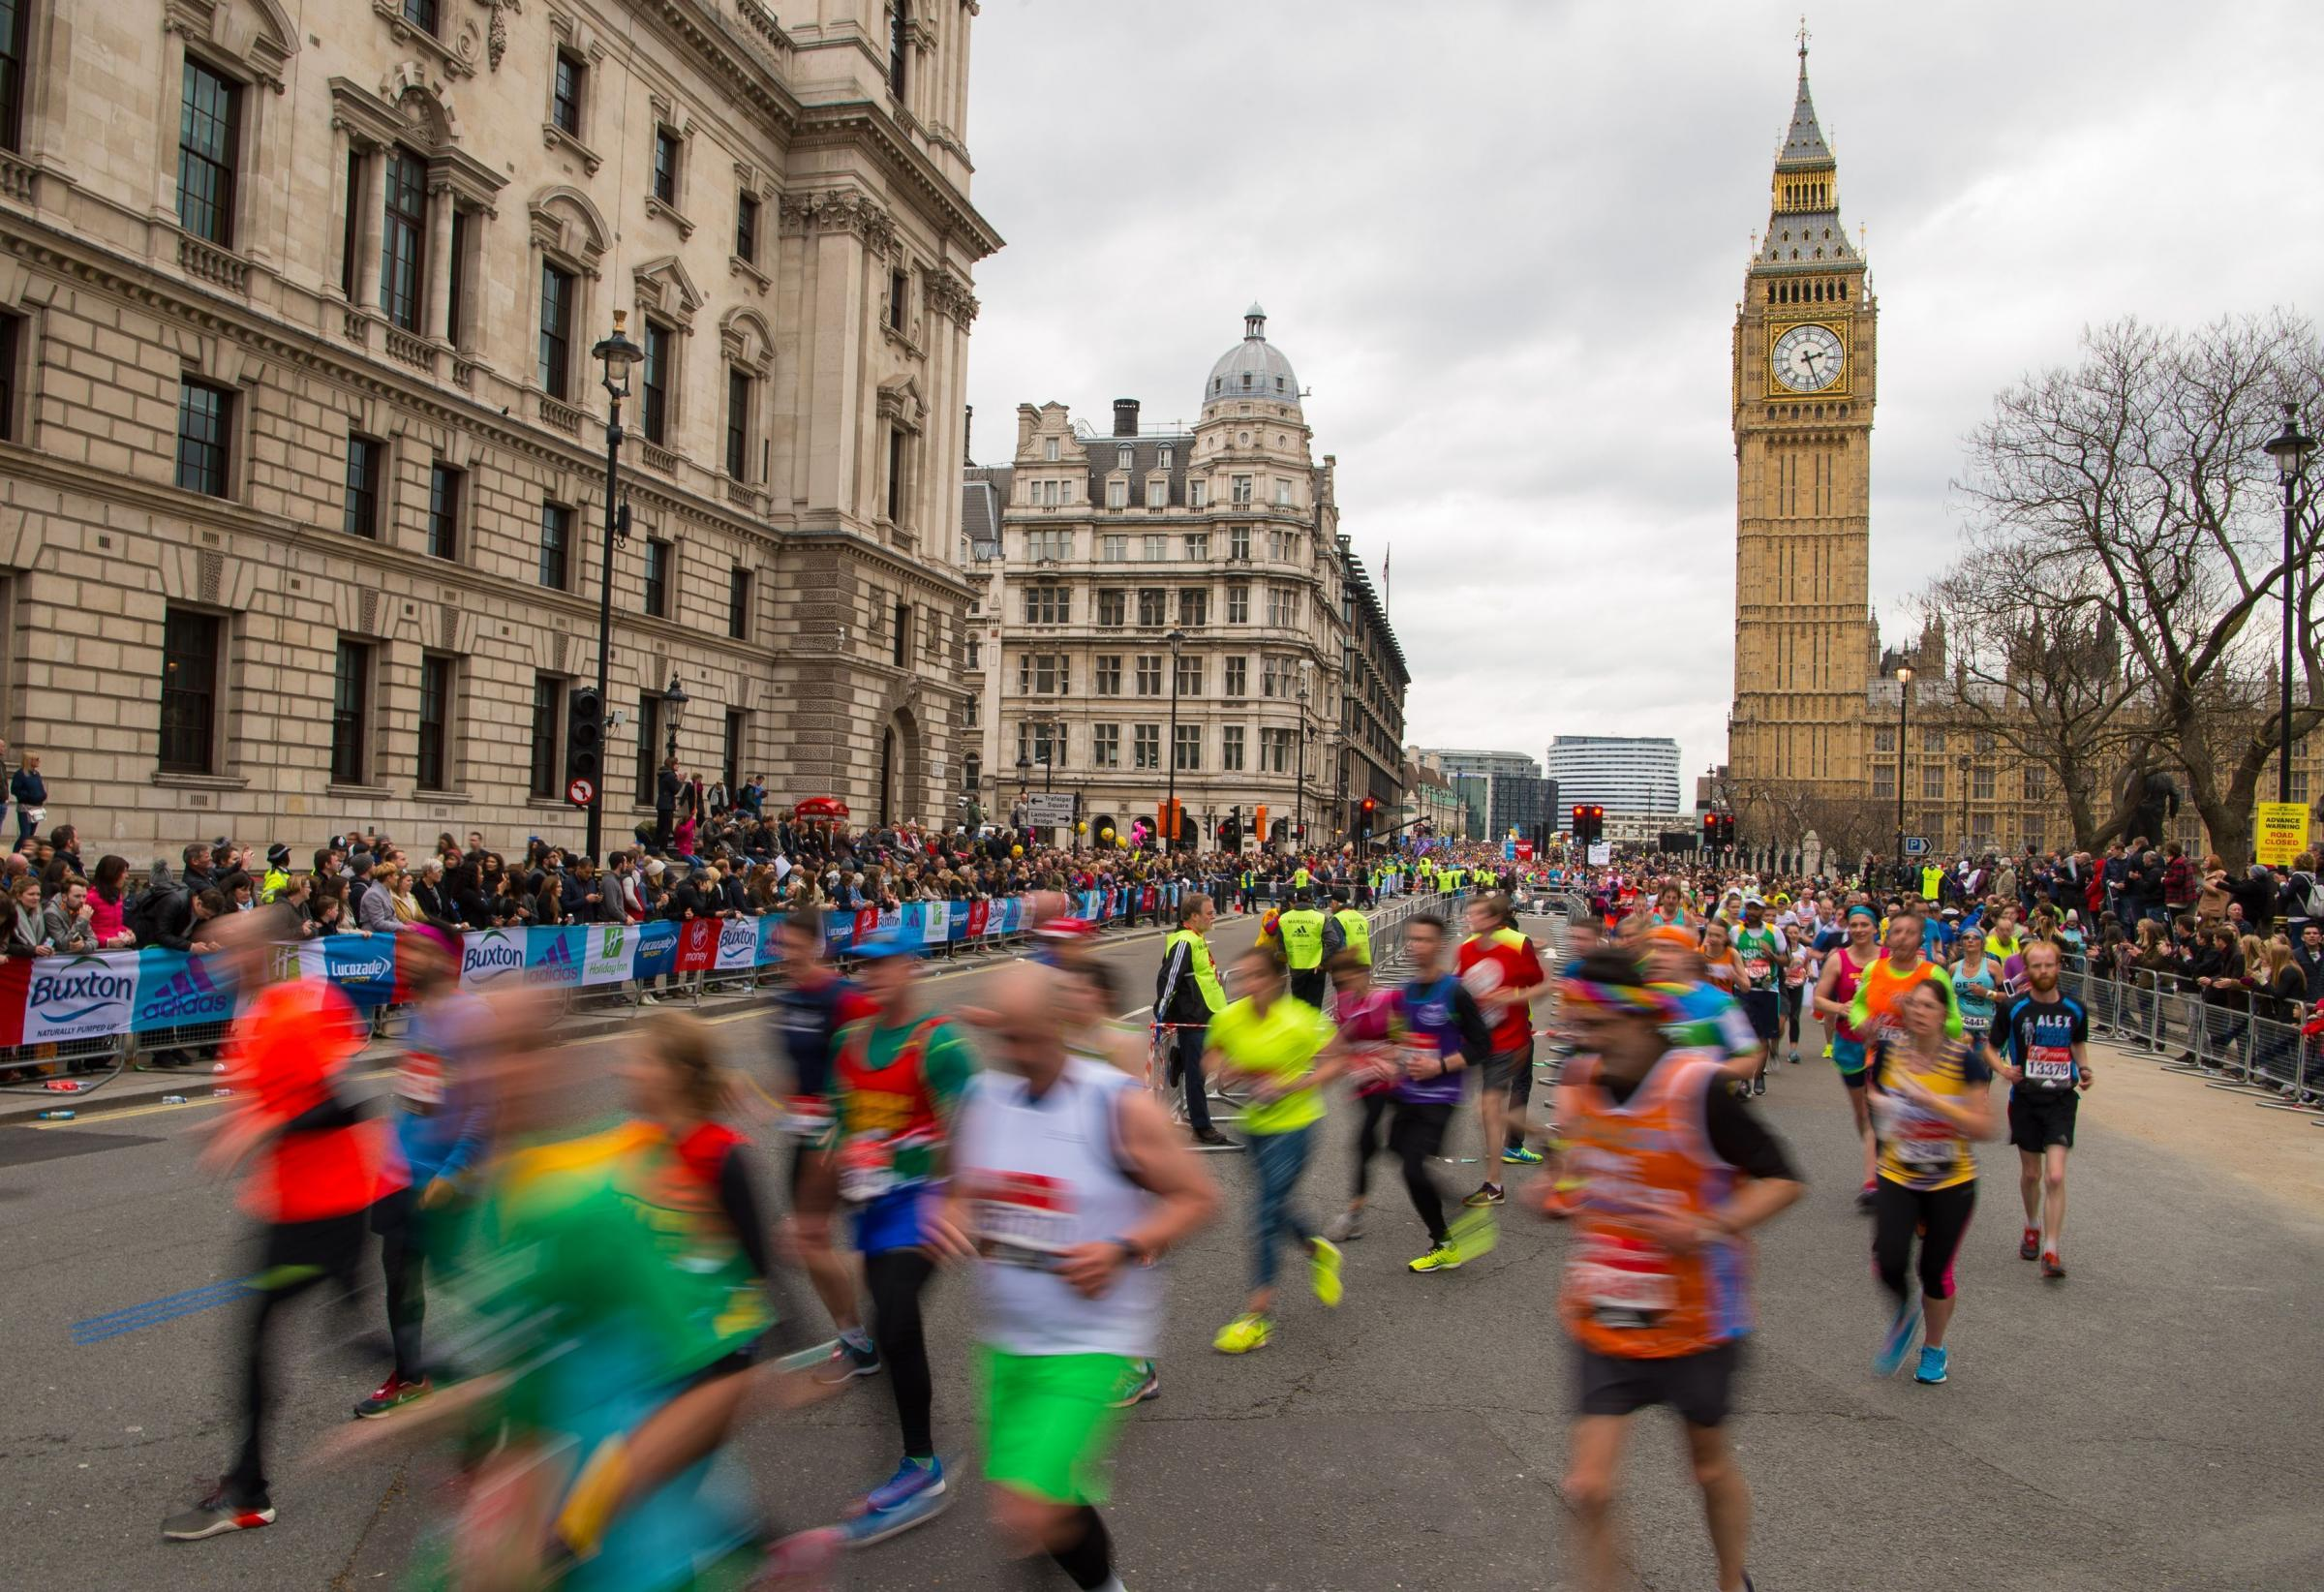 London Marathon Weather Forecast Predicts Race Could Be Hottest On Record